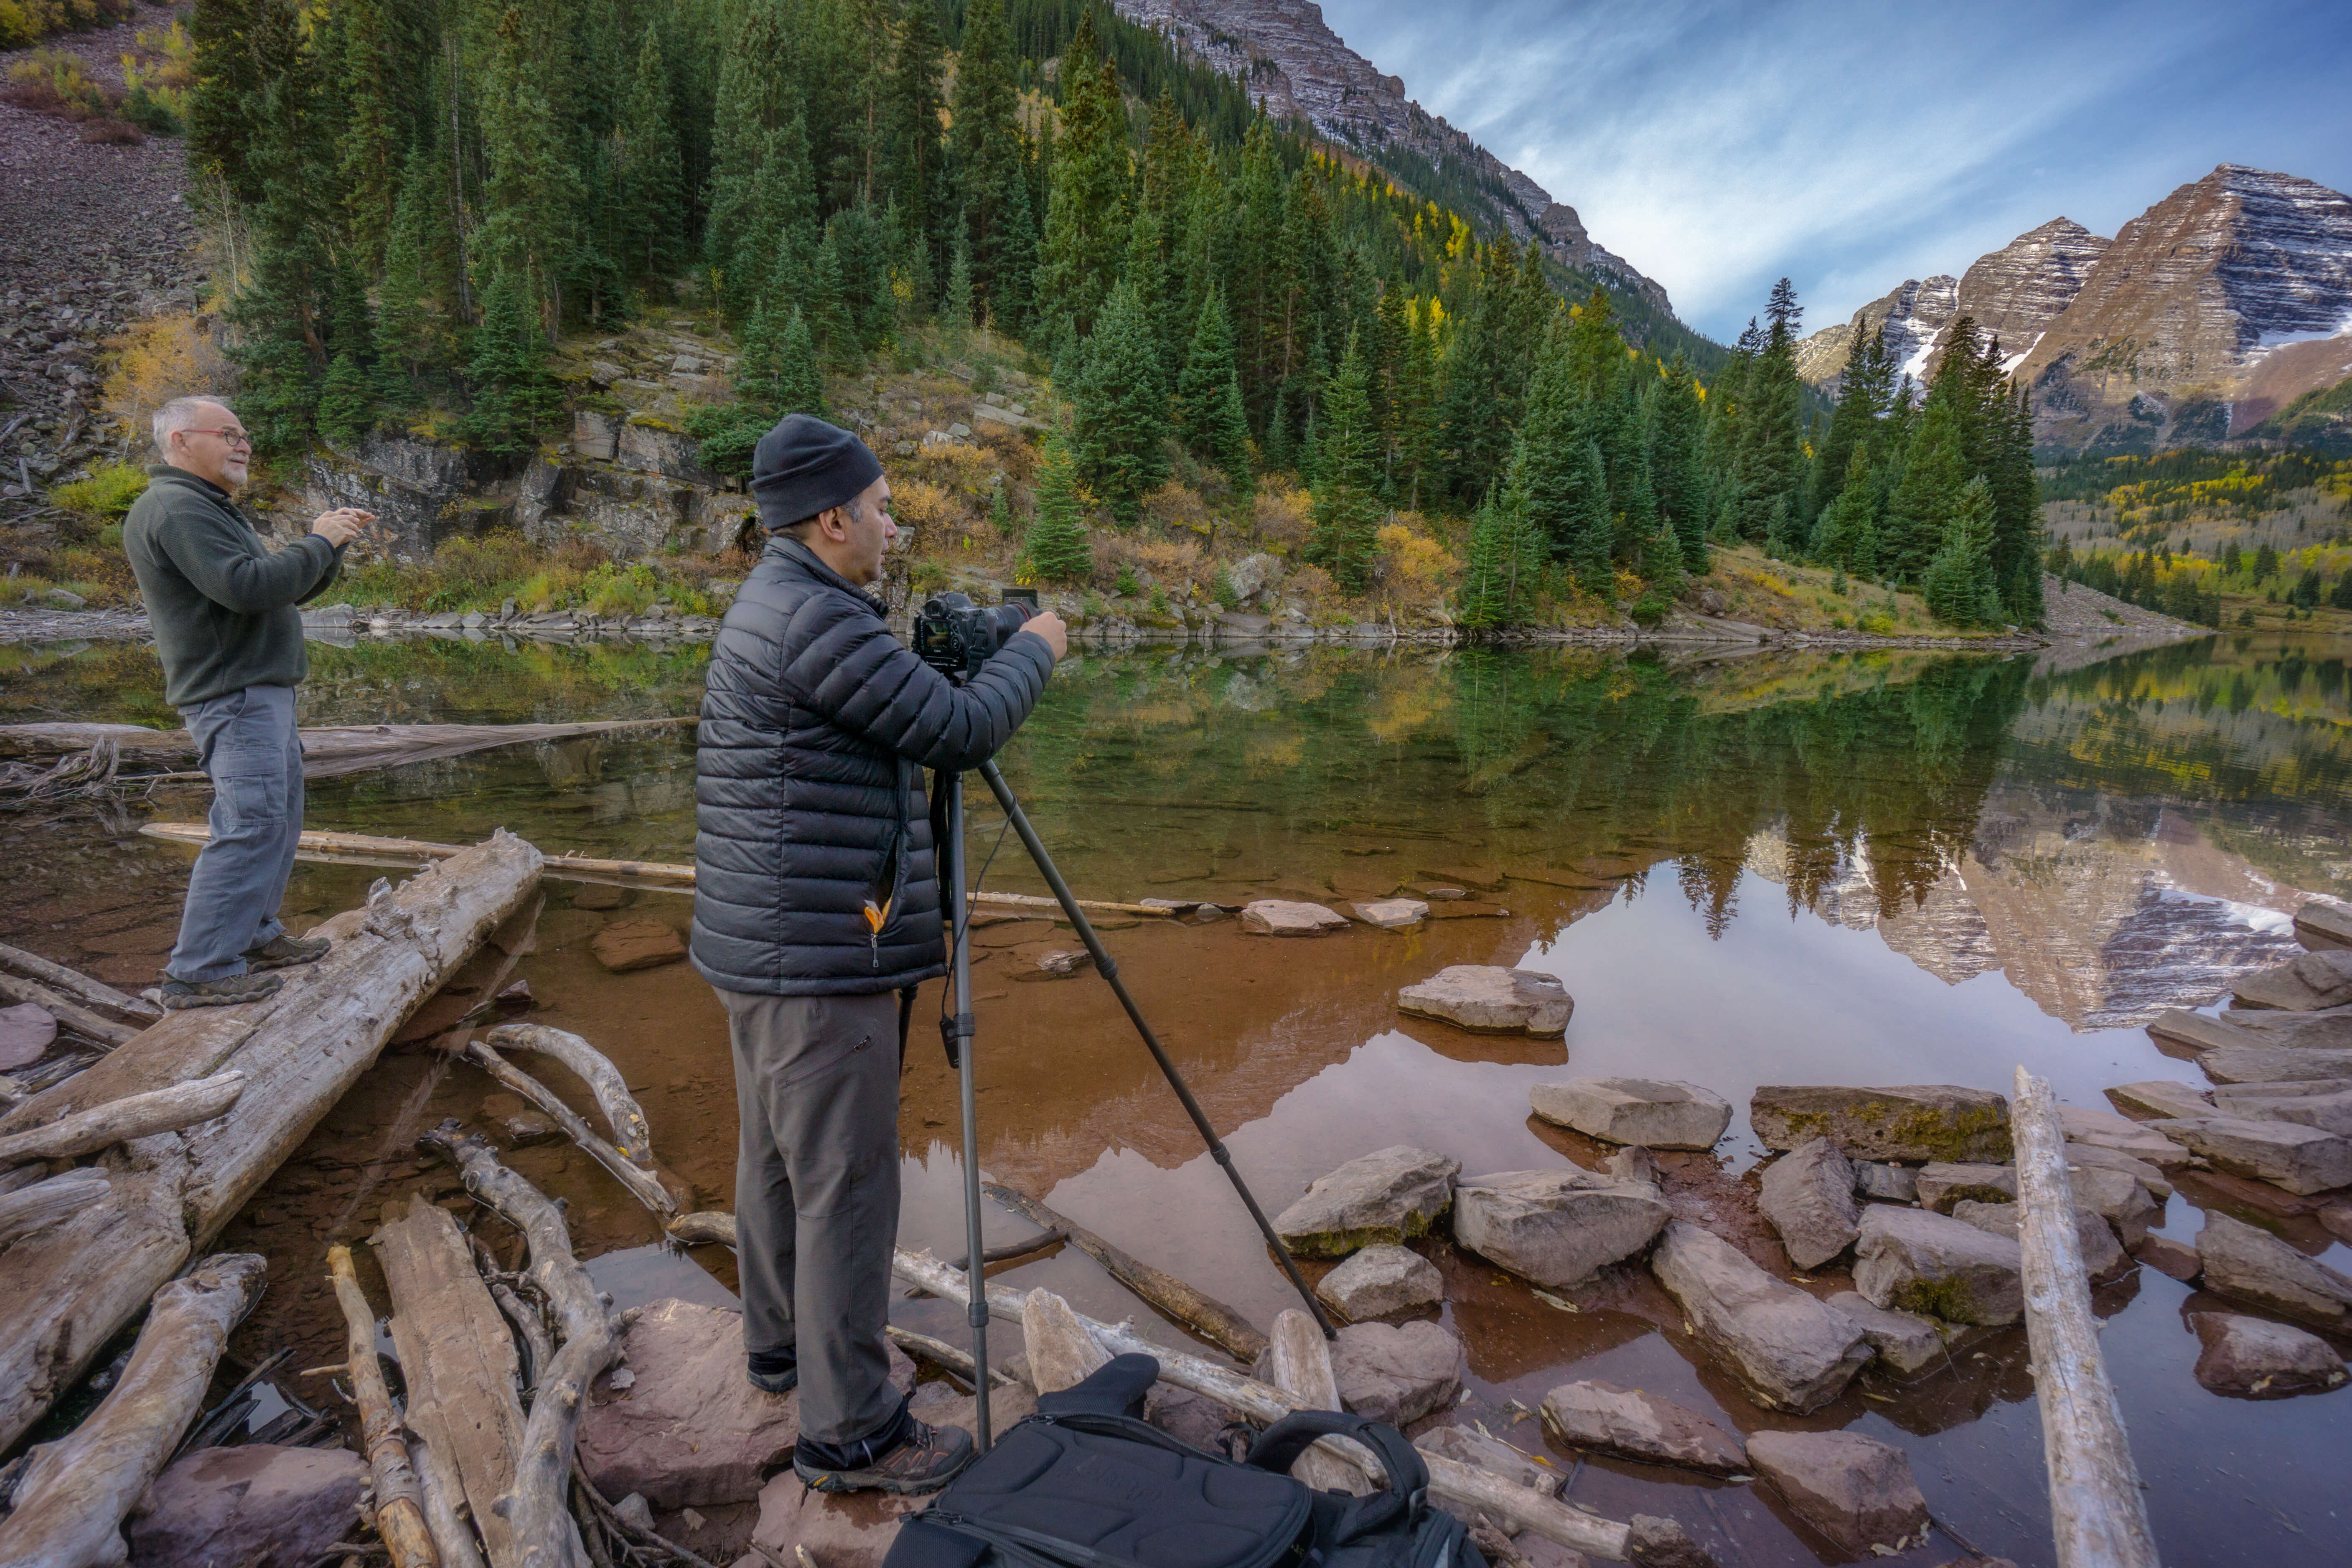 Photographers at Maroon Bells on the Intentionally Lost cycling tour and photography workshop